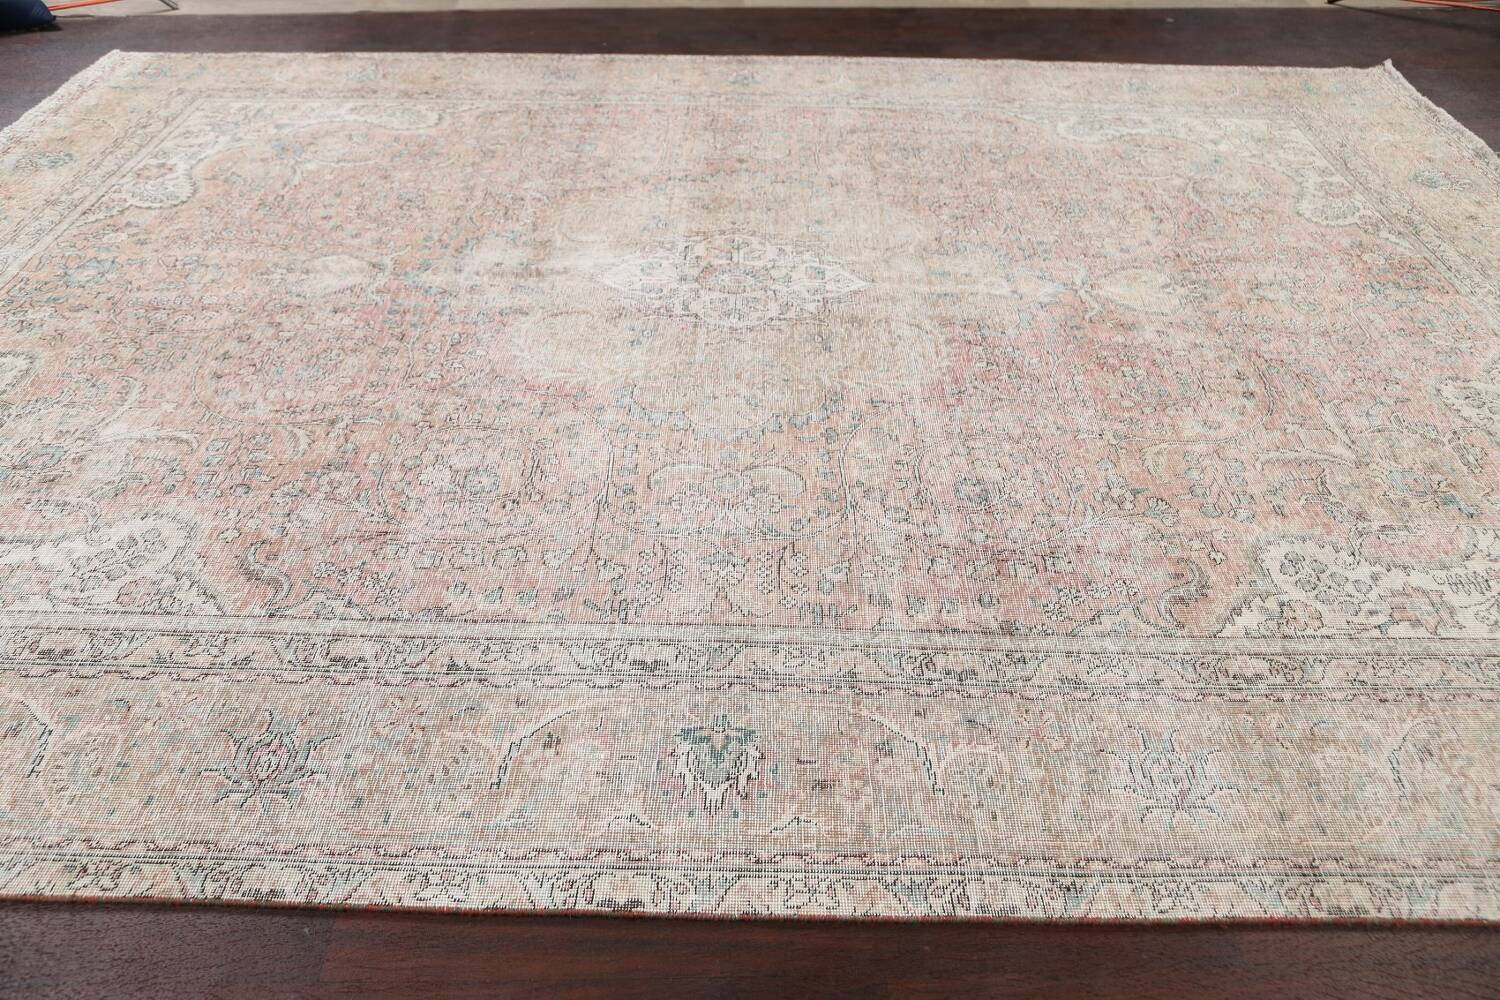 Antique Muted Distressed Tabriz Persian Area Rug 10x13 image 14